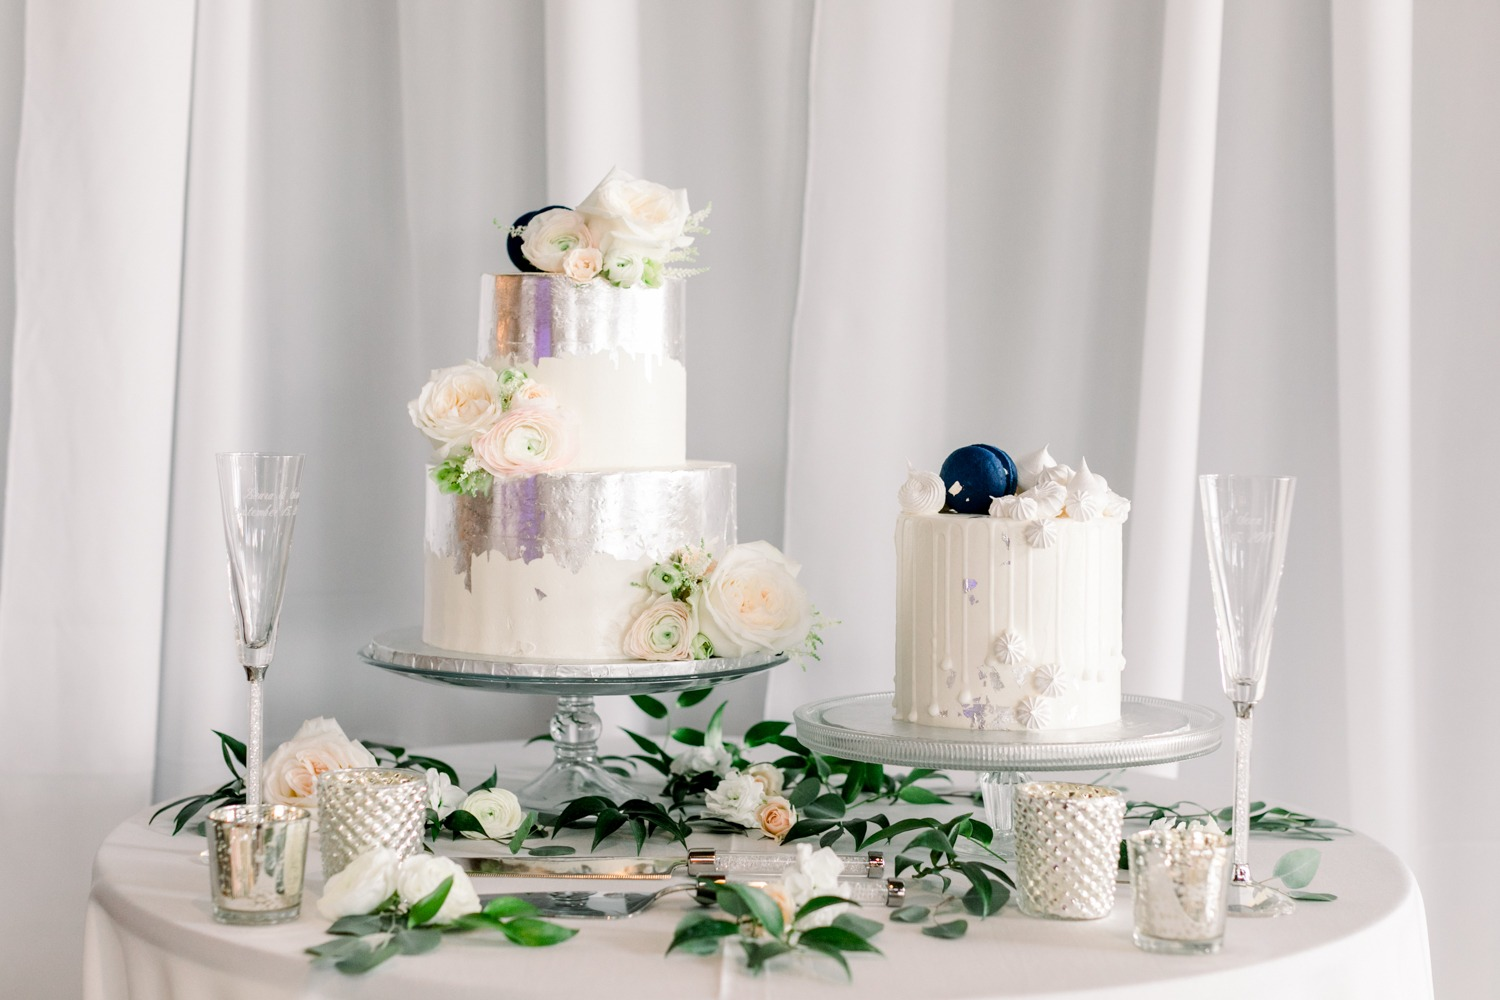 Silver and white wedding cakes